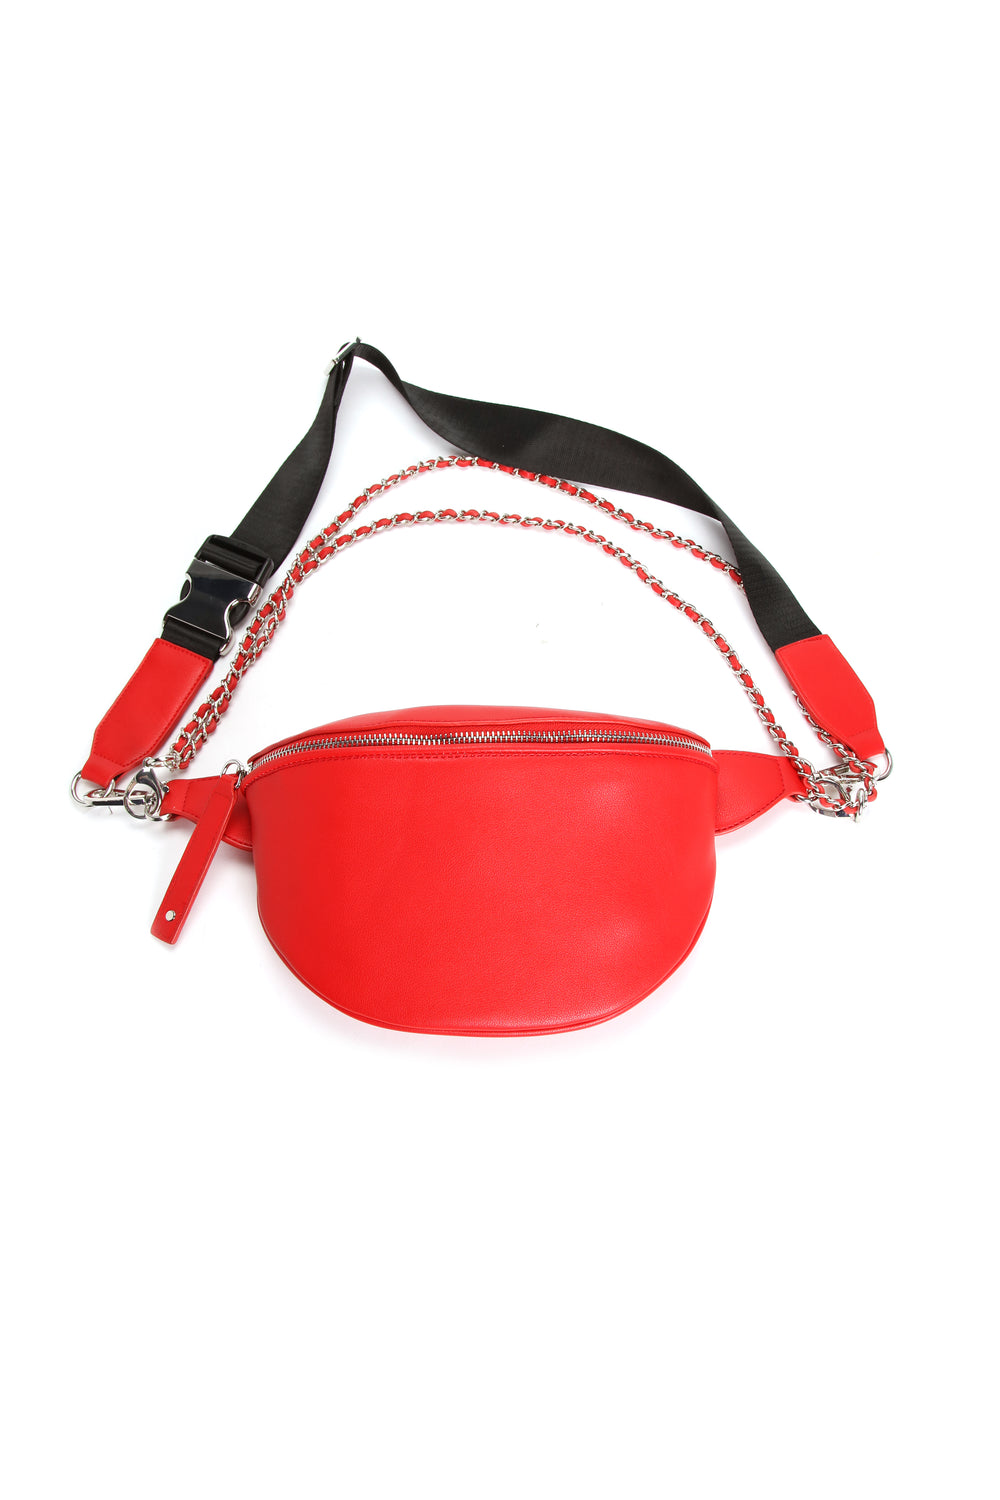 Chain In Personality Fanny Pack - Red